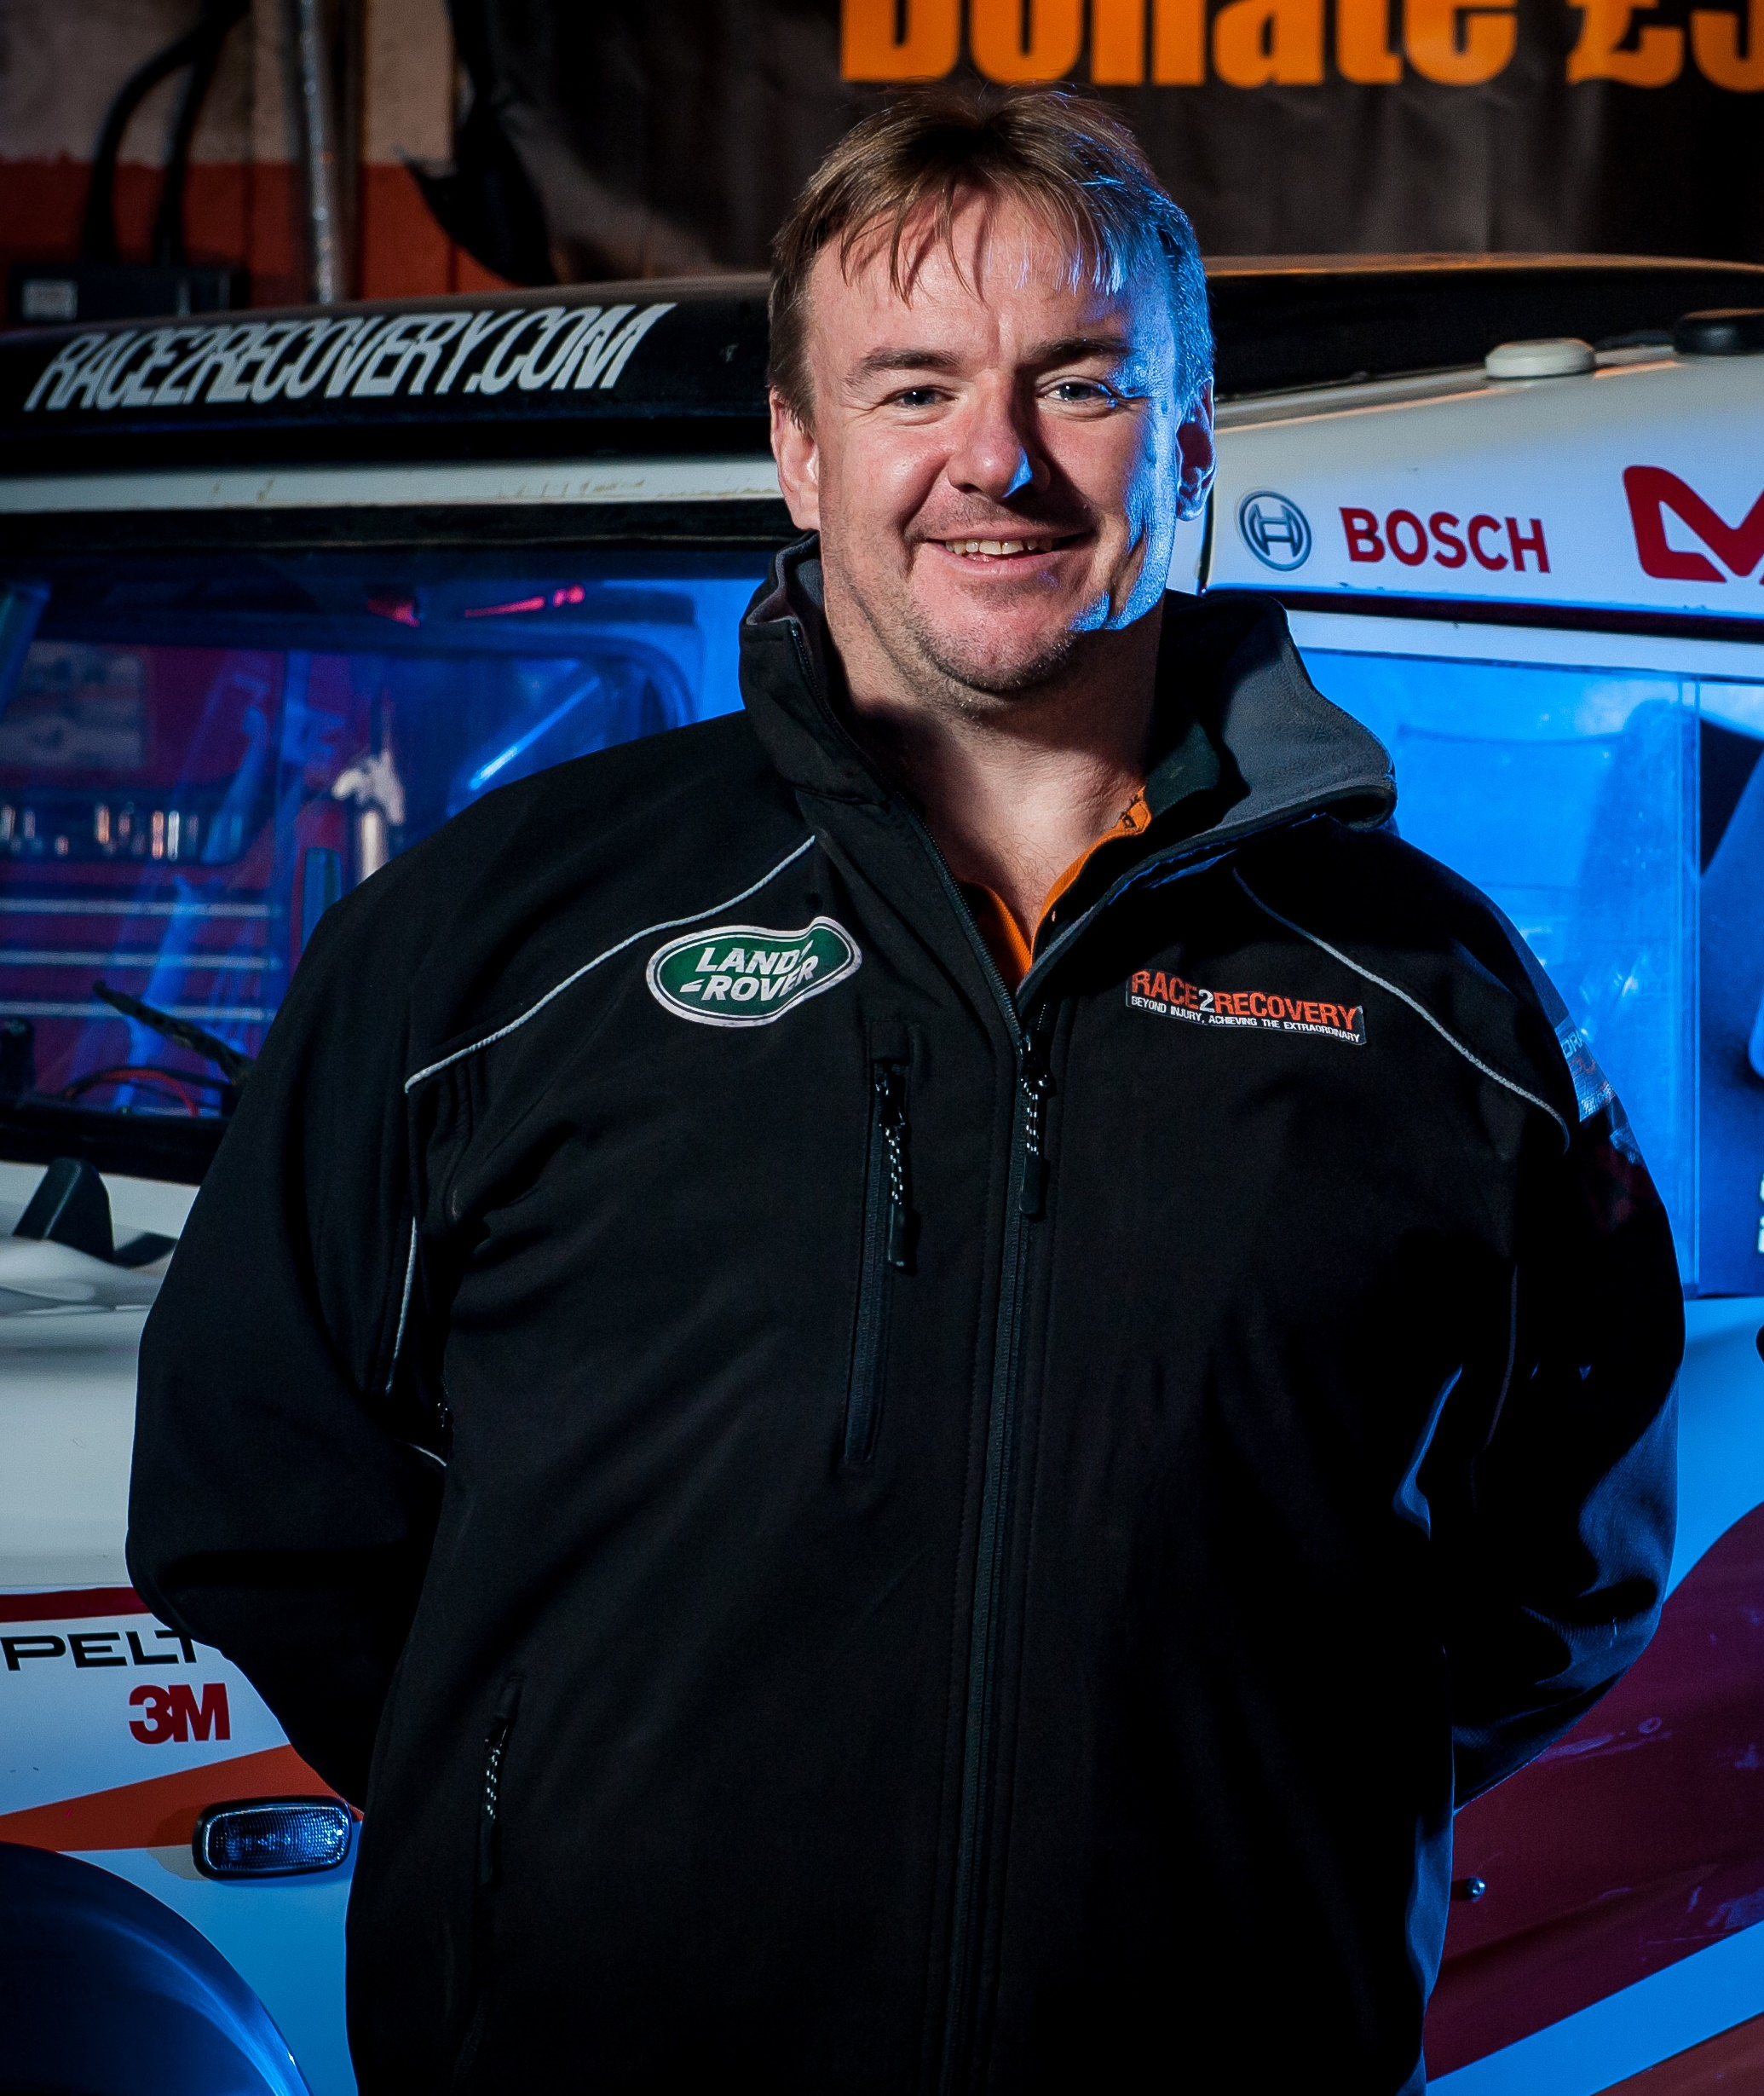 Yate war veteran overcomes crash to compete in 2014 Dakar rally